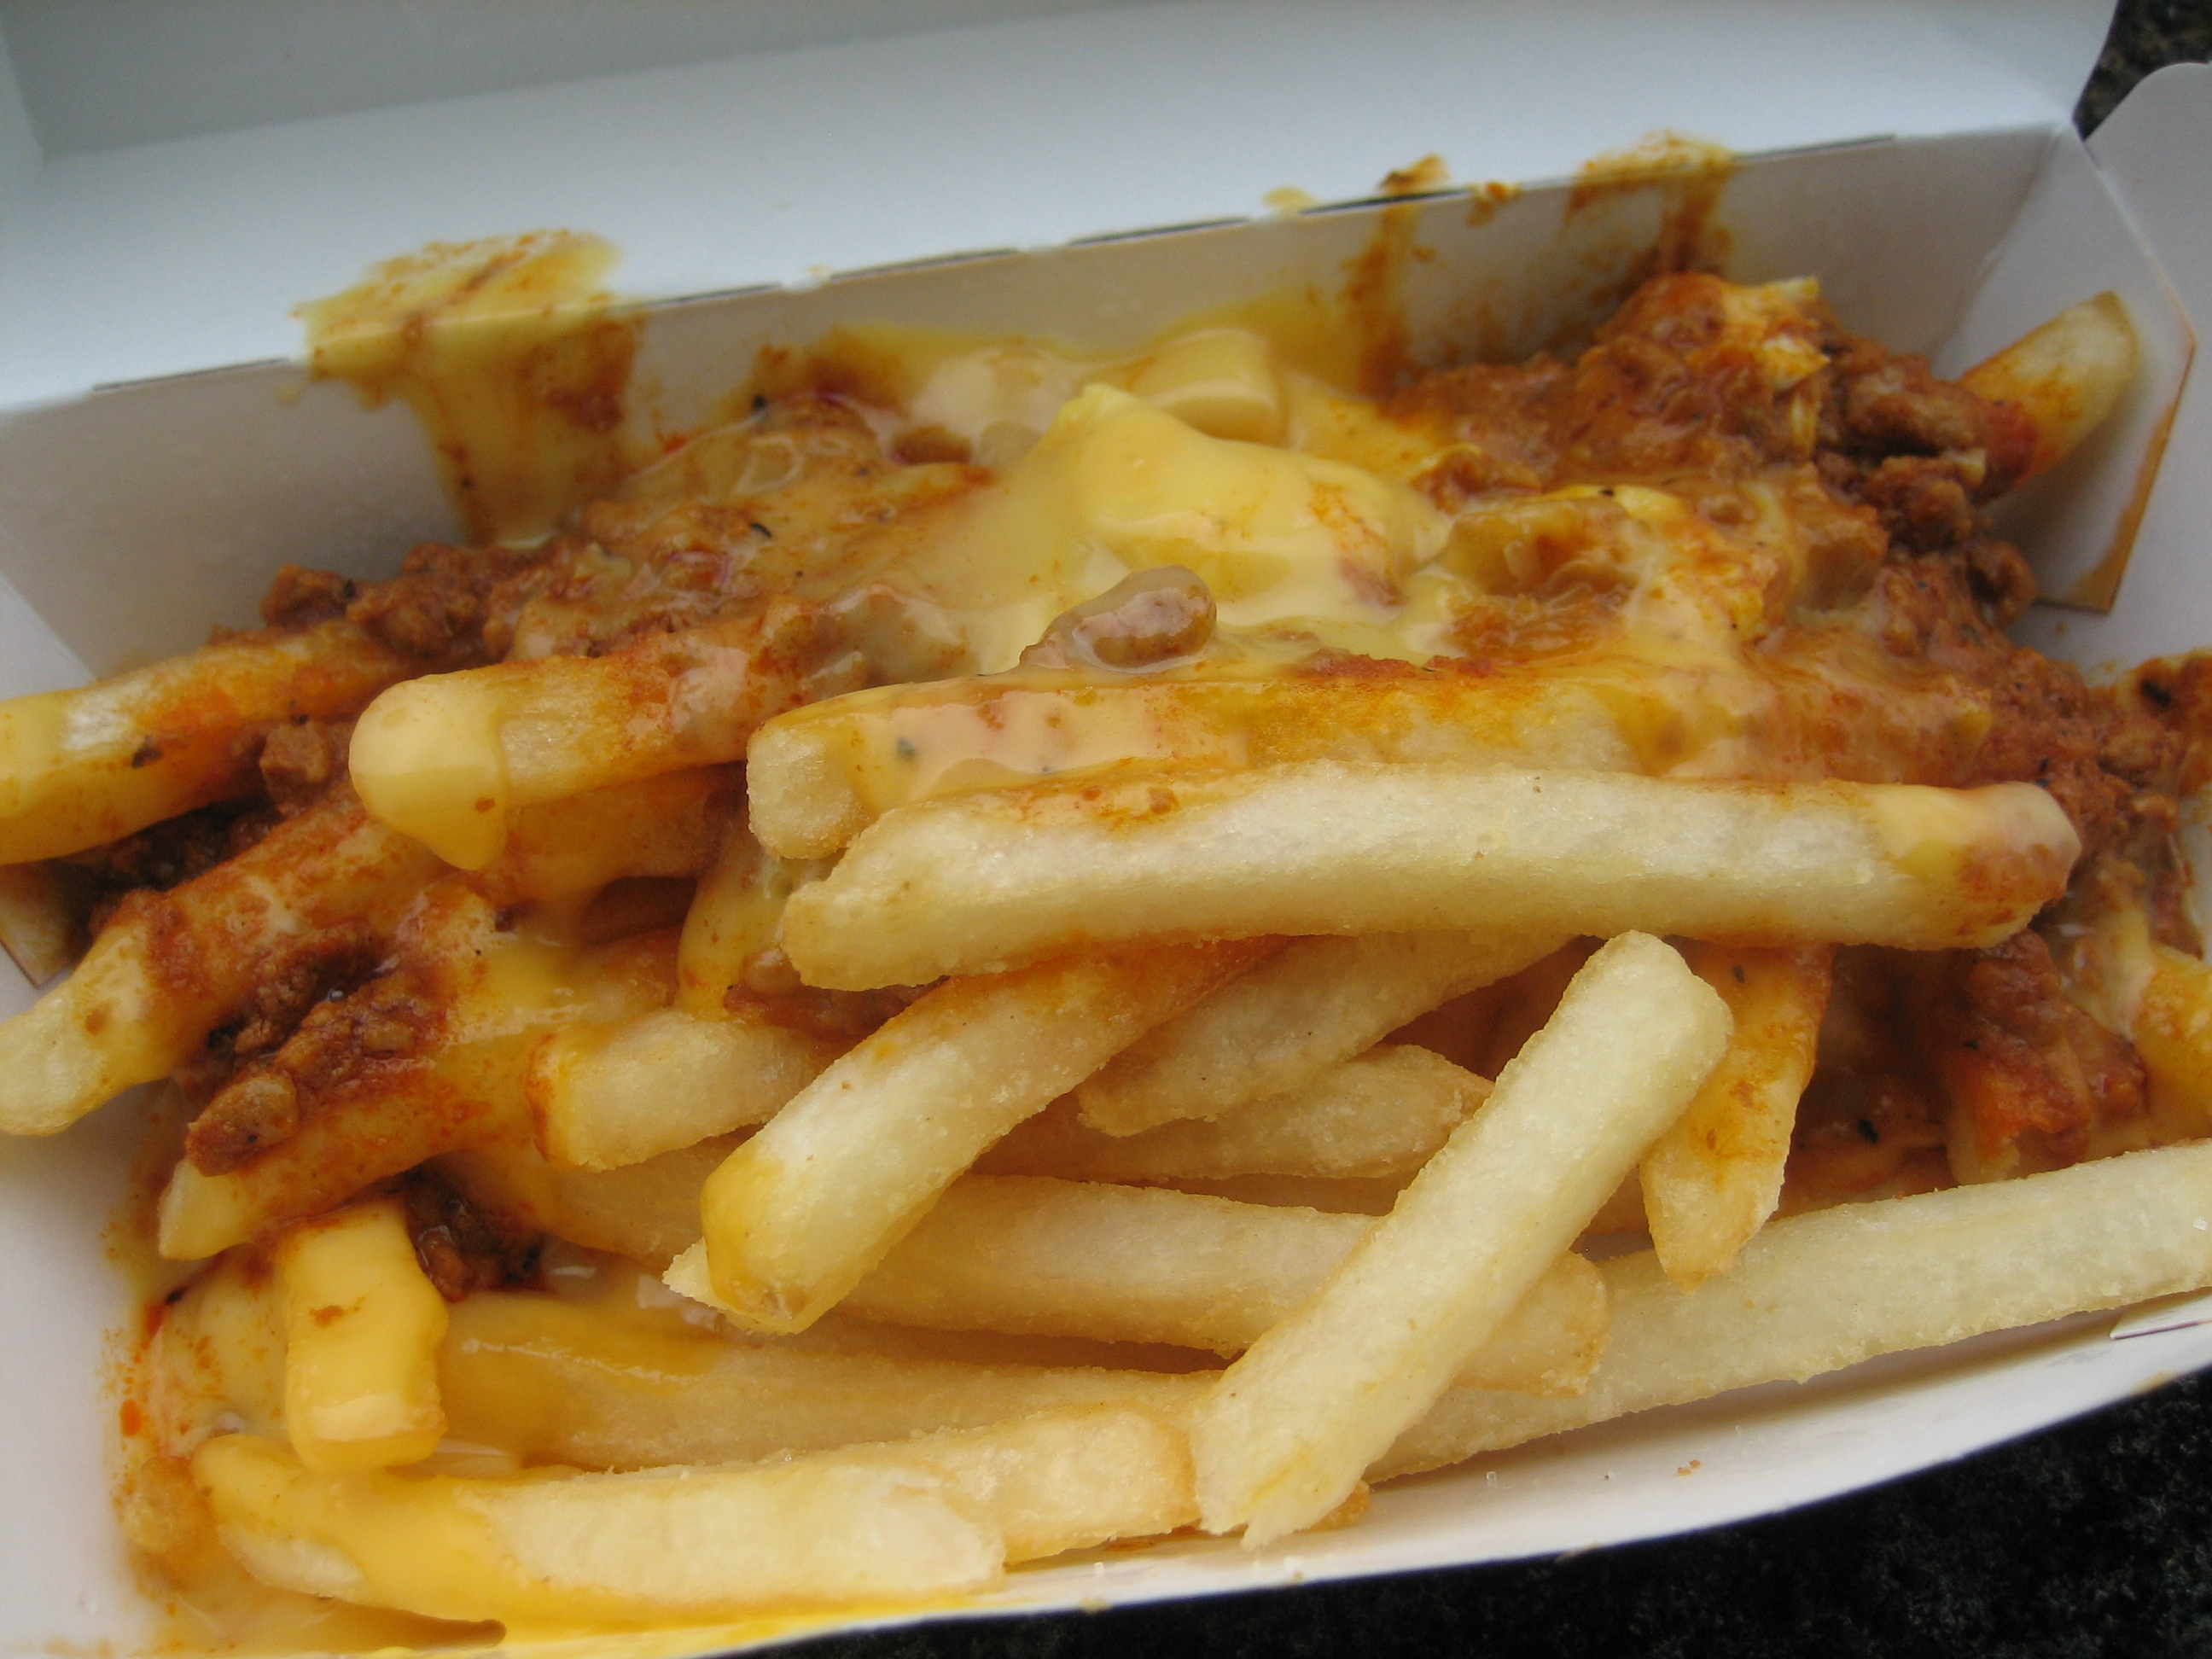 troubling chemicals found in wide range of fast food wrappers troubling chemicals found in wide range of fast food wrappers